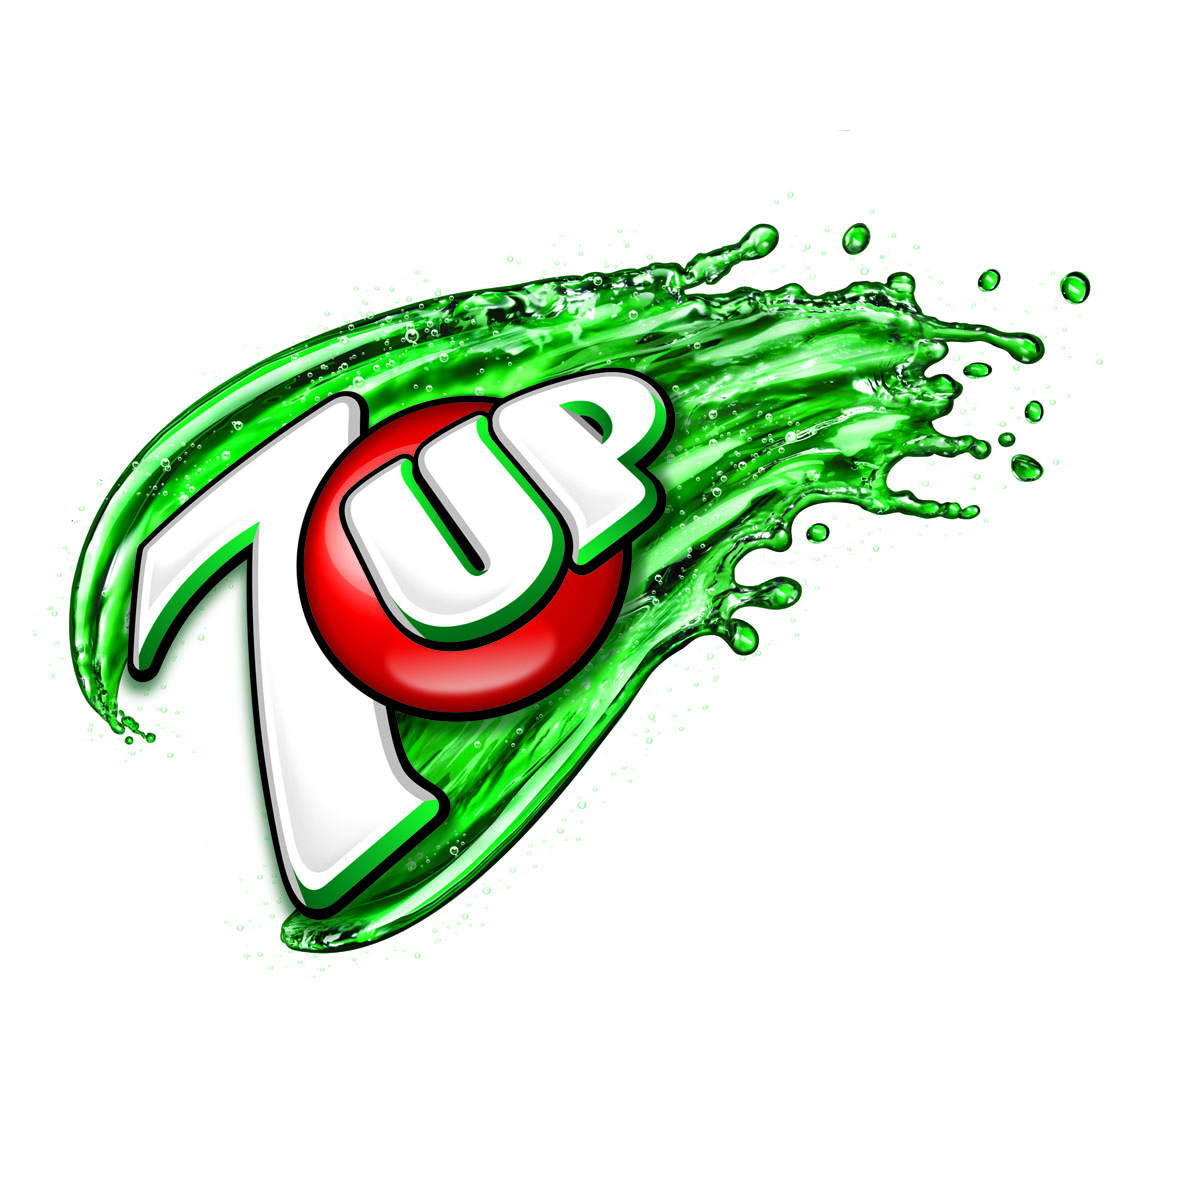 7 UP Logo Wallpaper